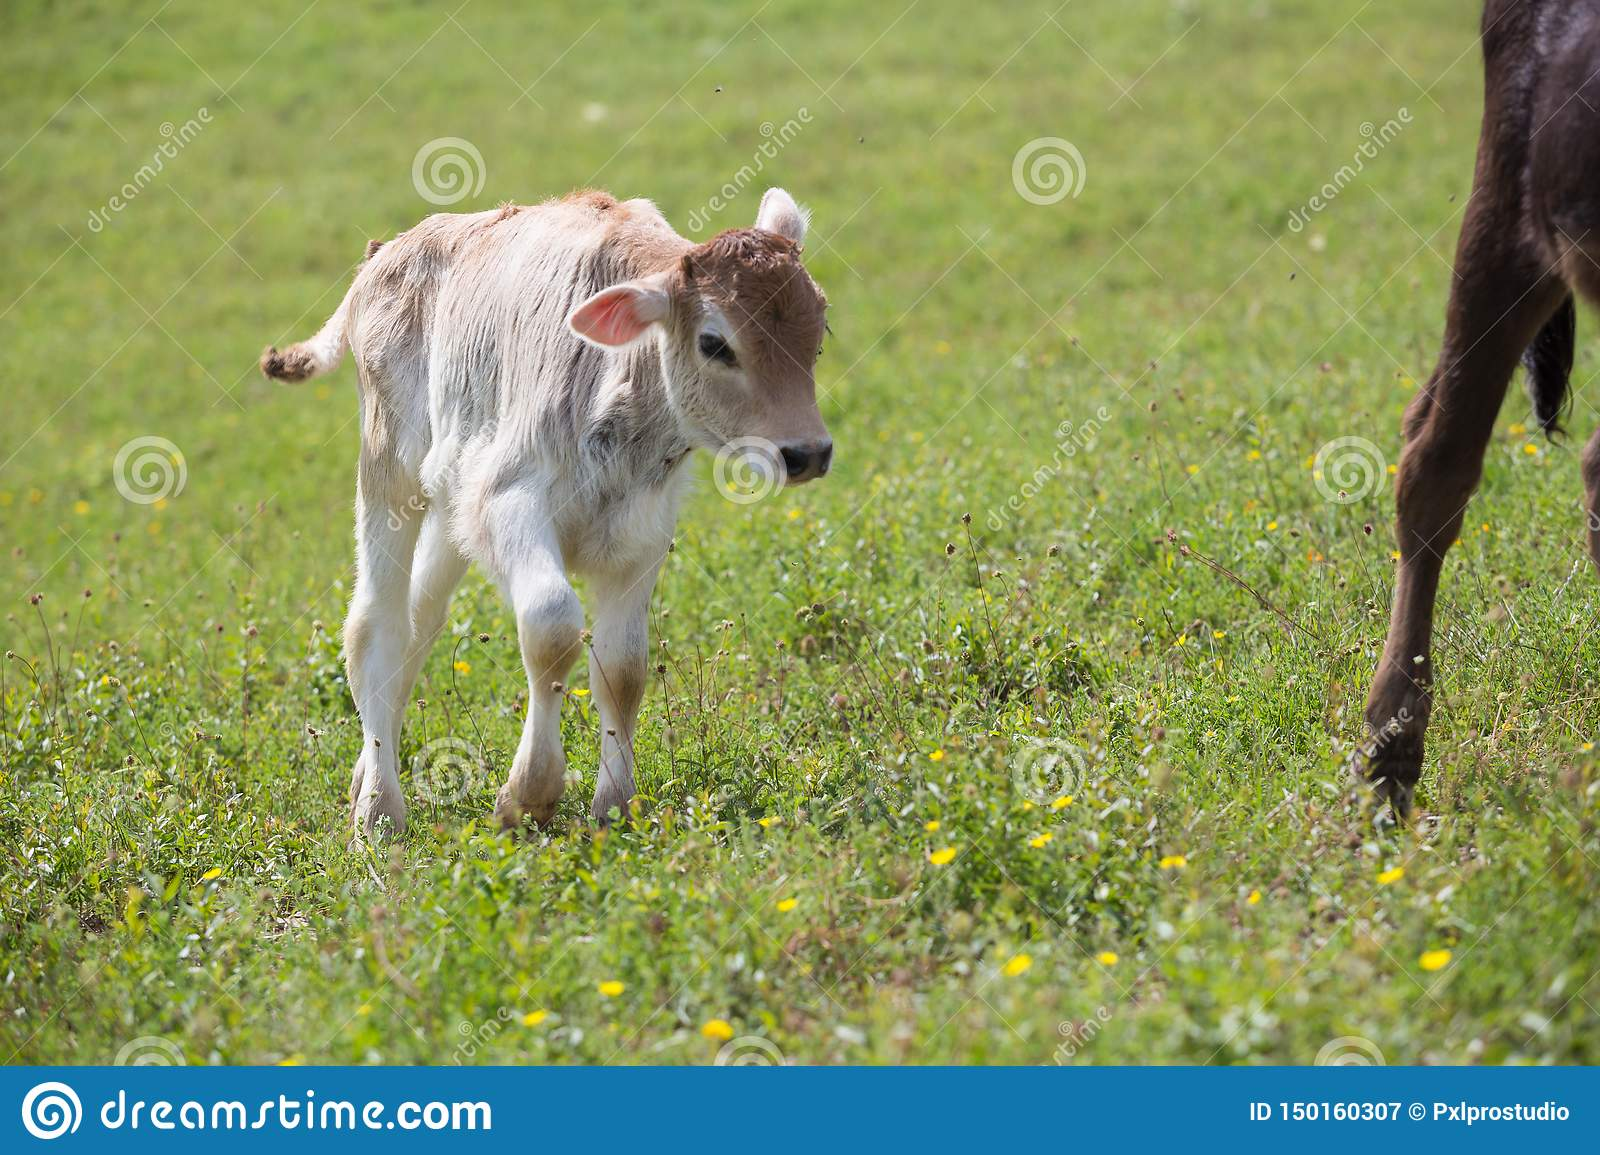 Close-up of calf in green field lit by sun with fresh summer grass on green blurred background. Cattle farming, breeding